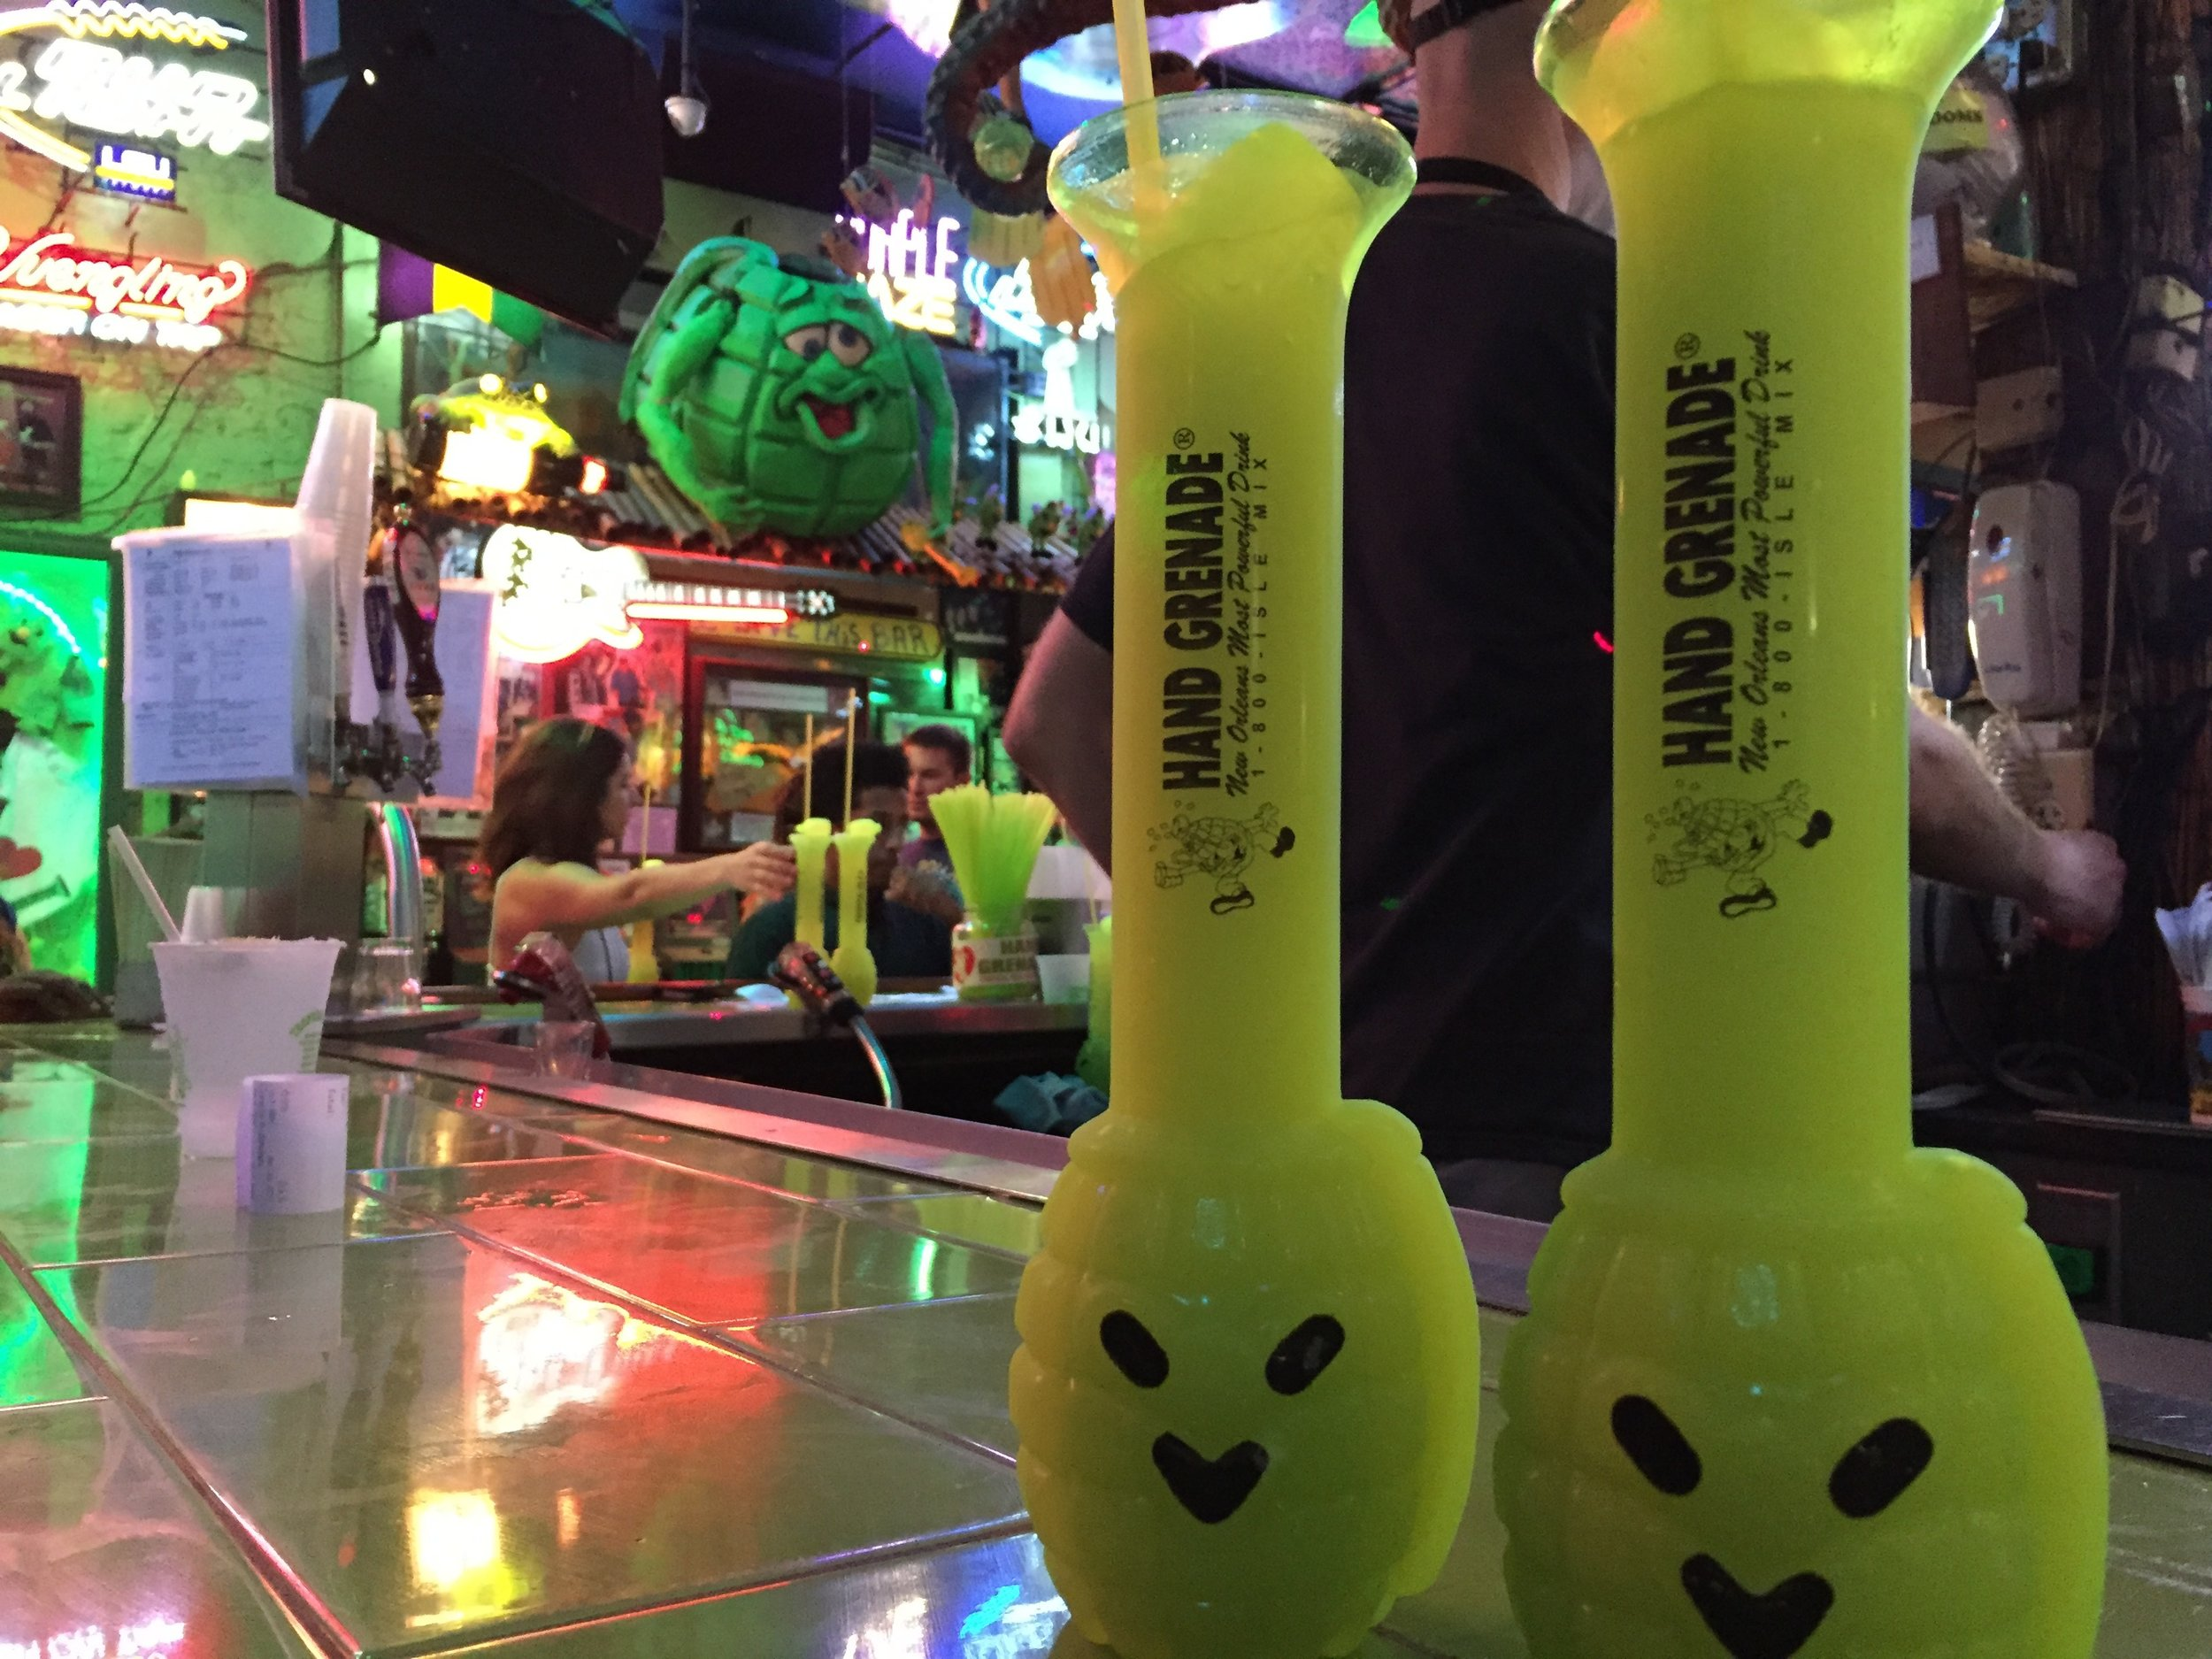 Hand Grenades at the Tropical Isle in New Orleans.